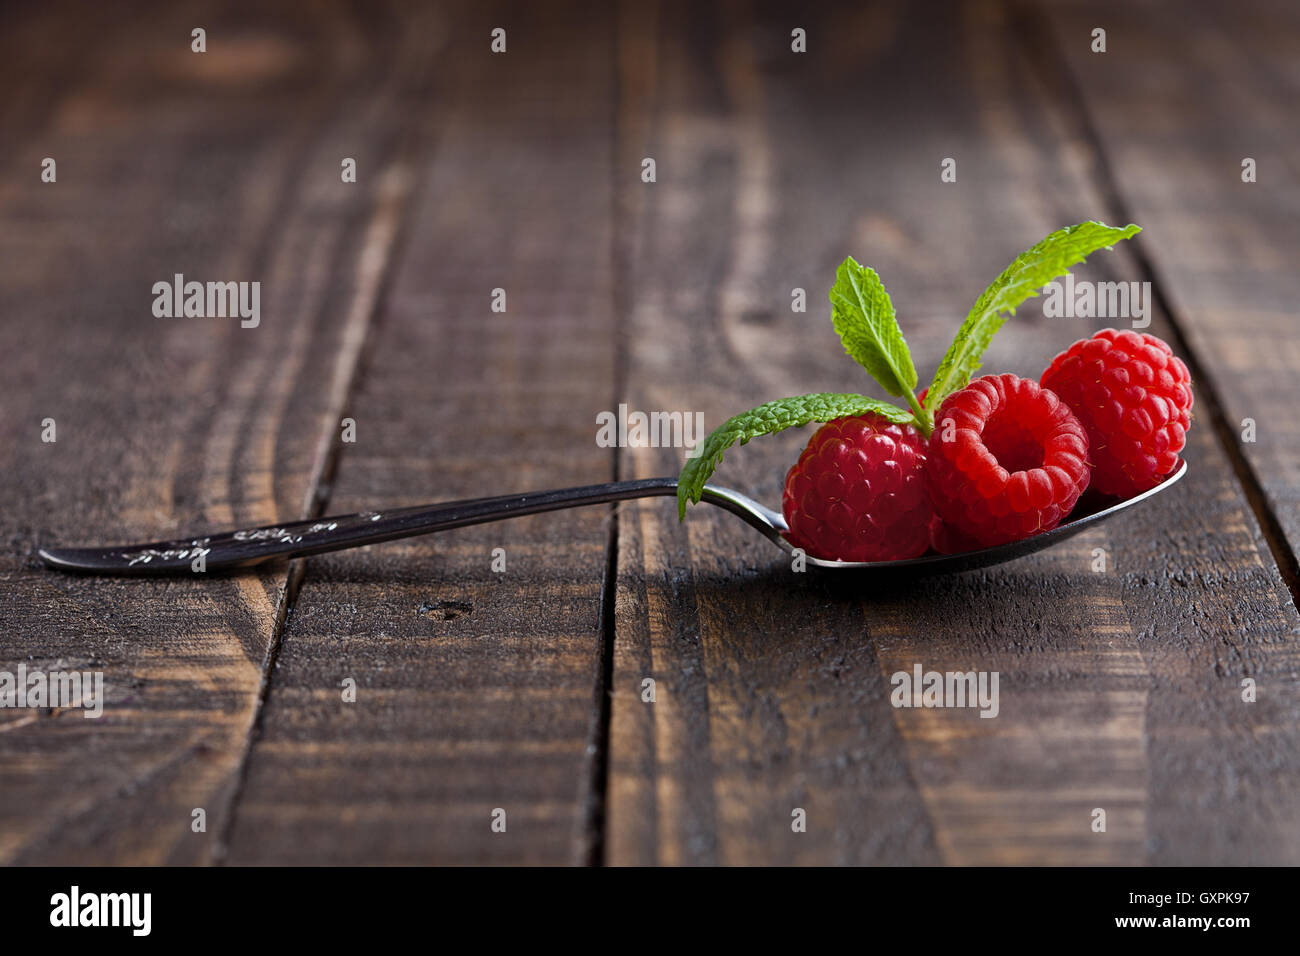 Raspberries on old spoon and mint on grunge wooden board. Natural healthy food. Still life photography - Stock Image